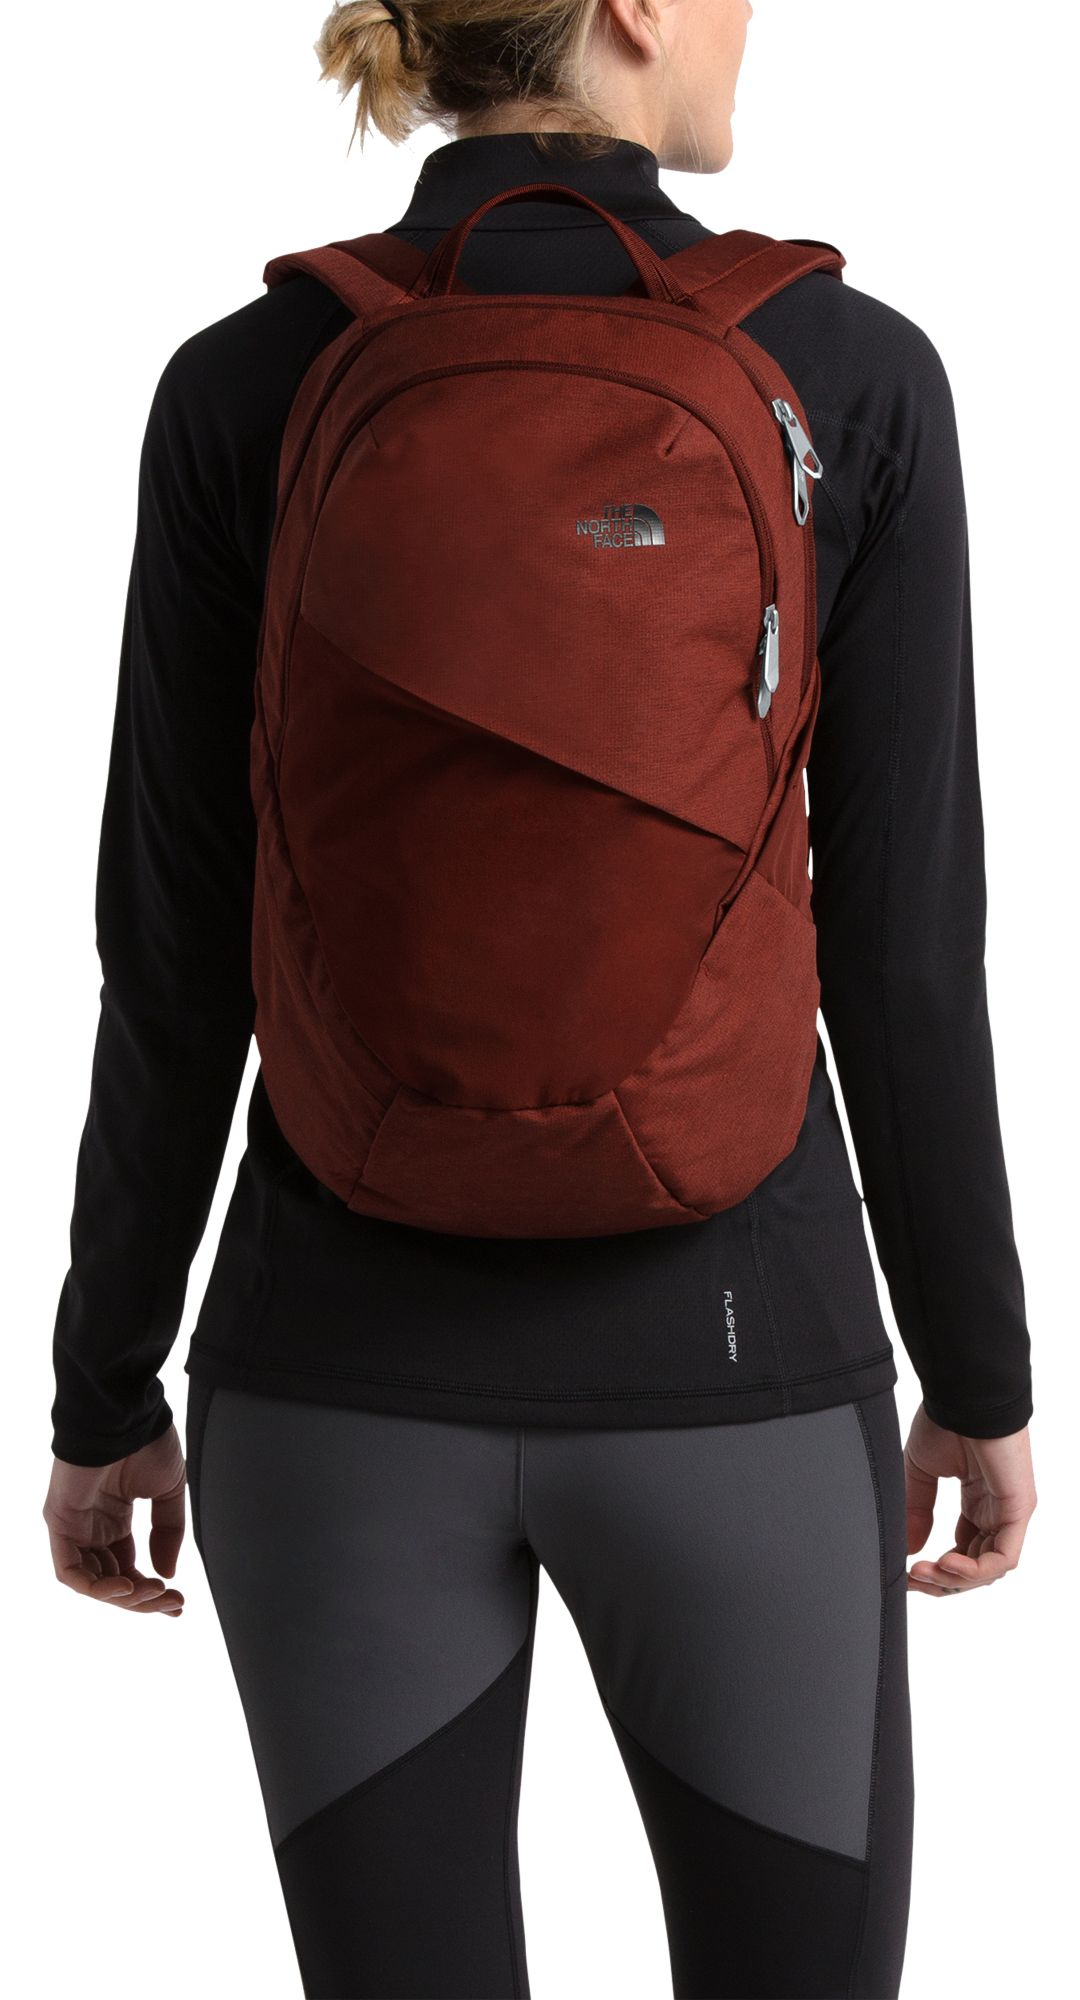 740d32cdb The North Face Women's Isabella Backpack